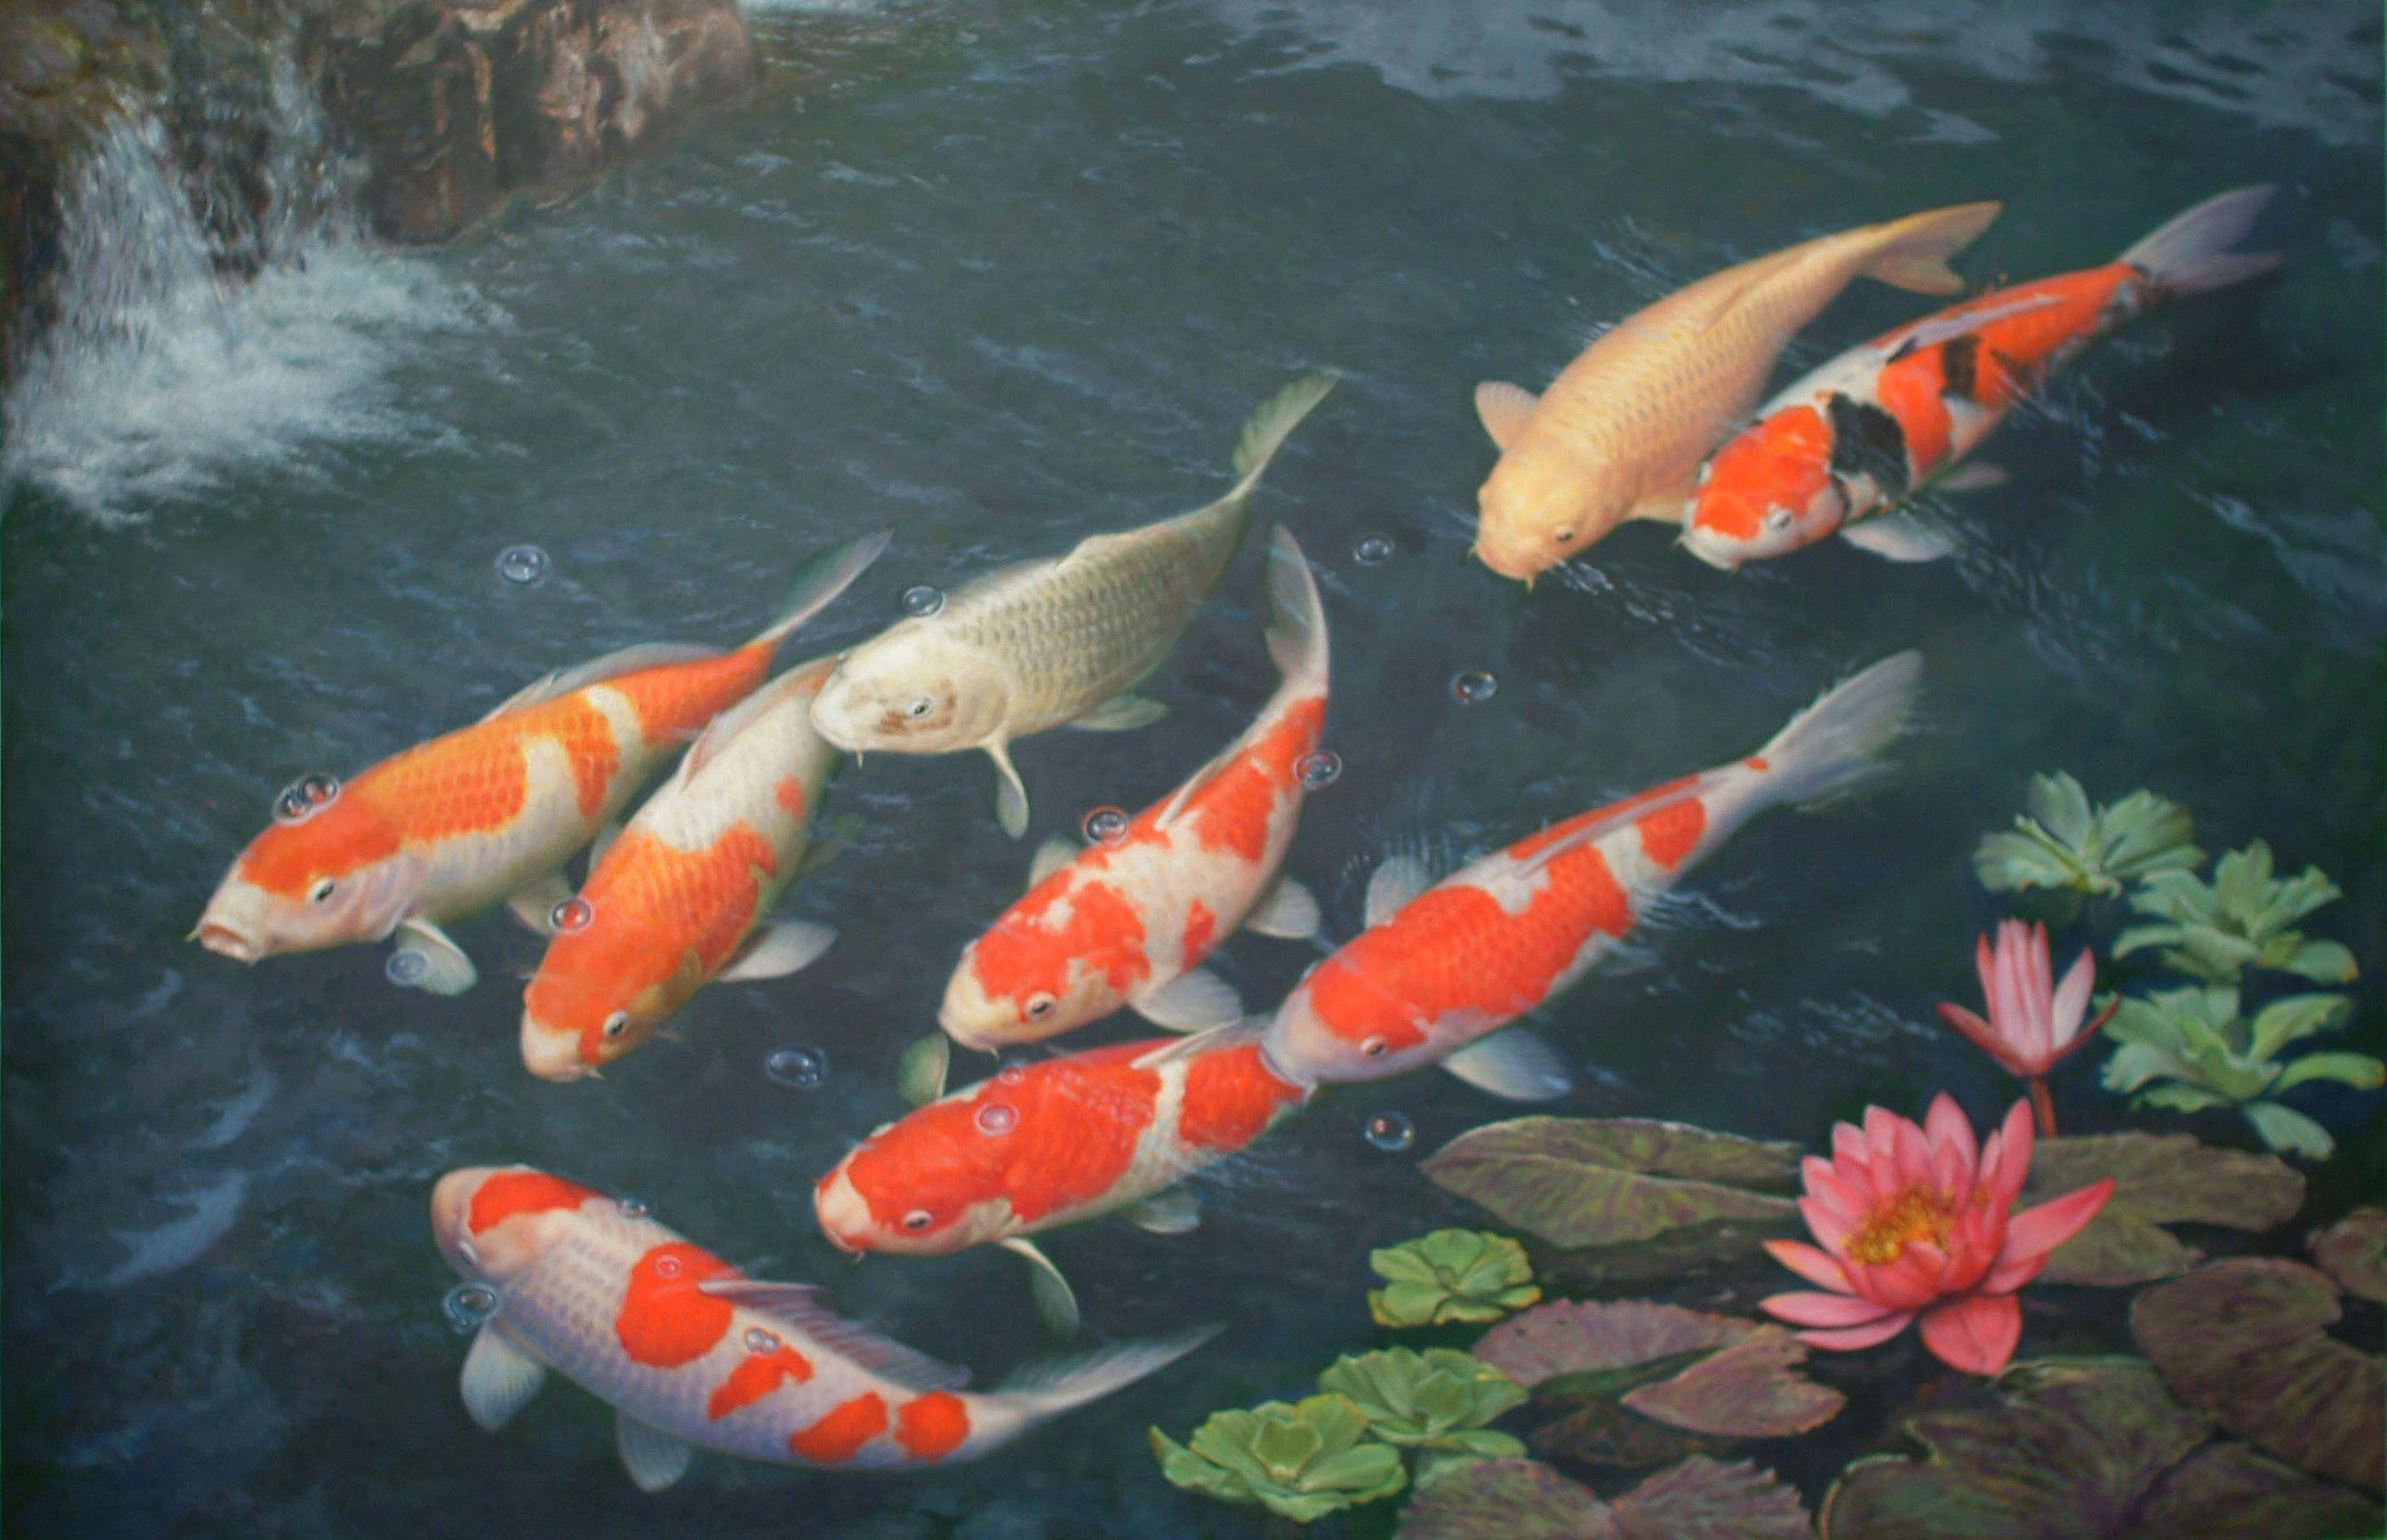 Koi fish wallpapers wallpaper cave for Koi pond photos